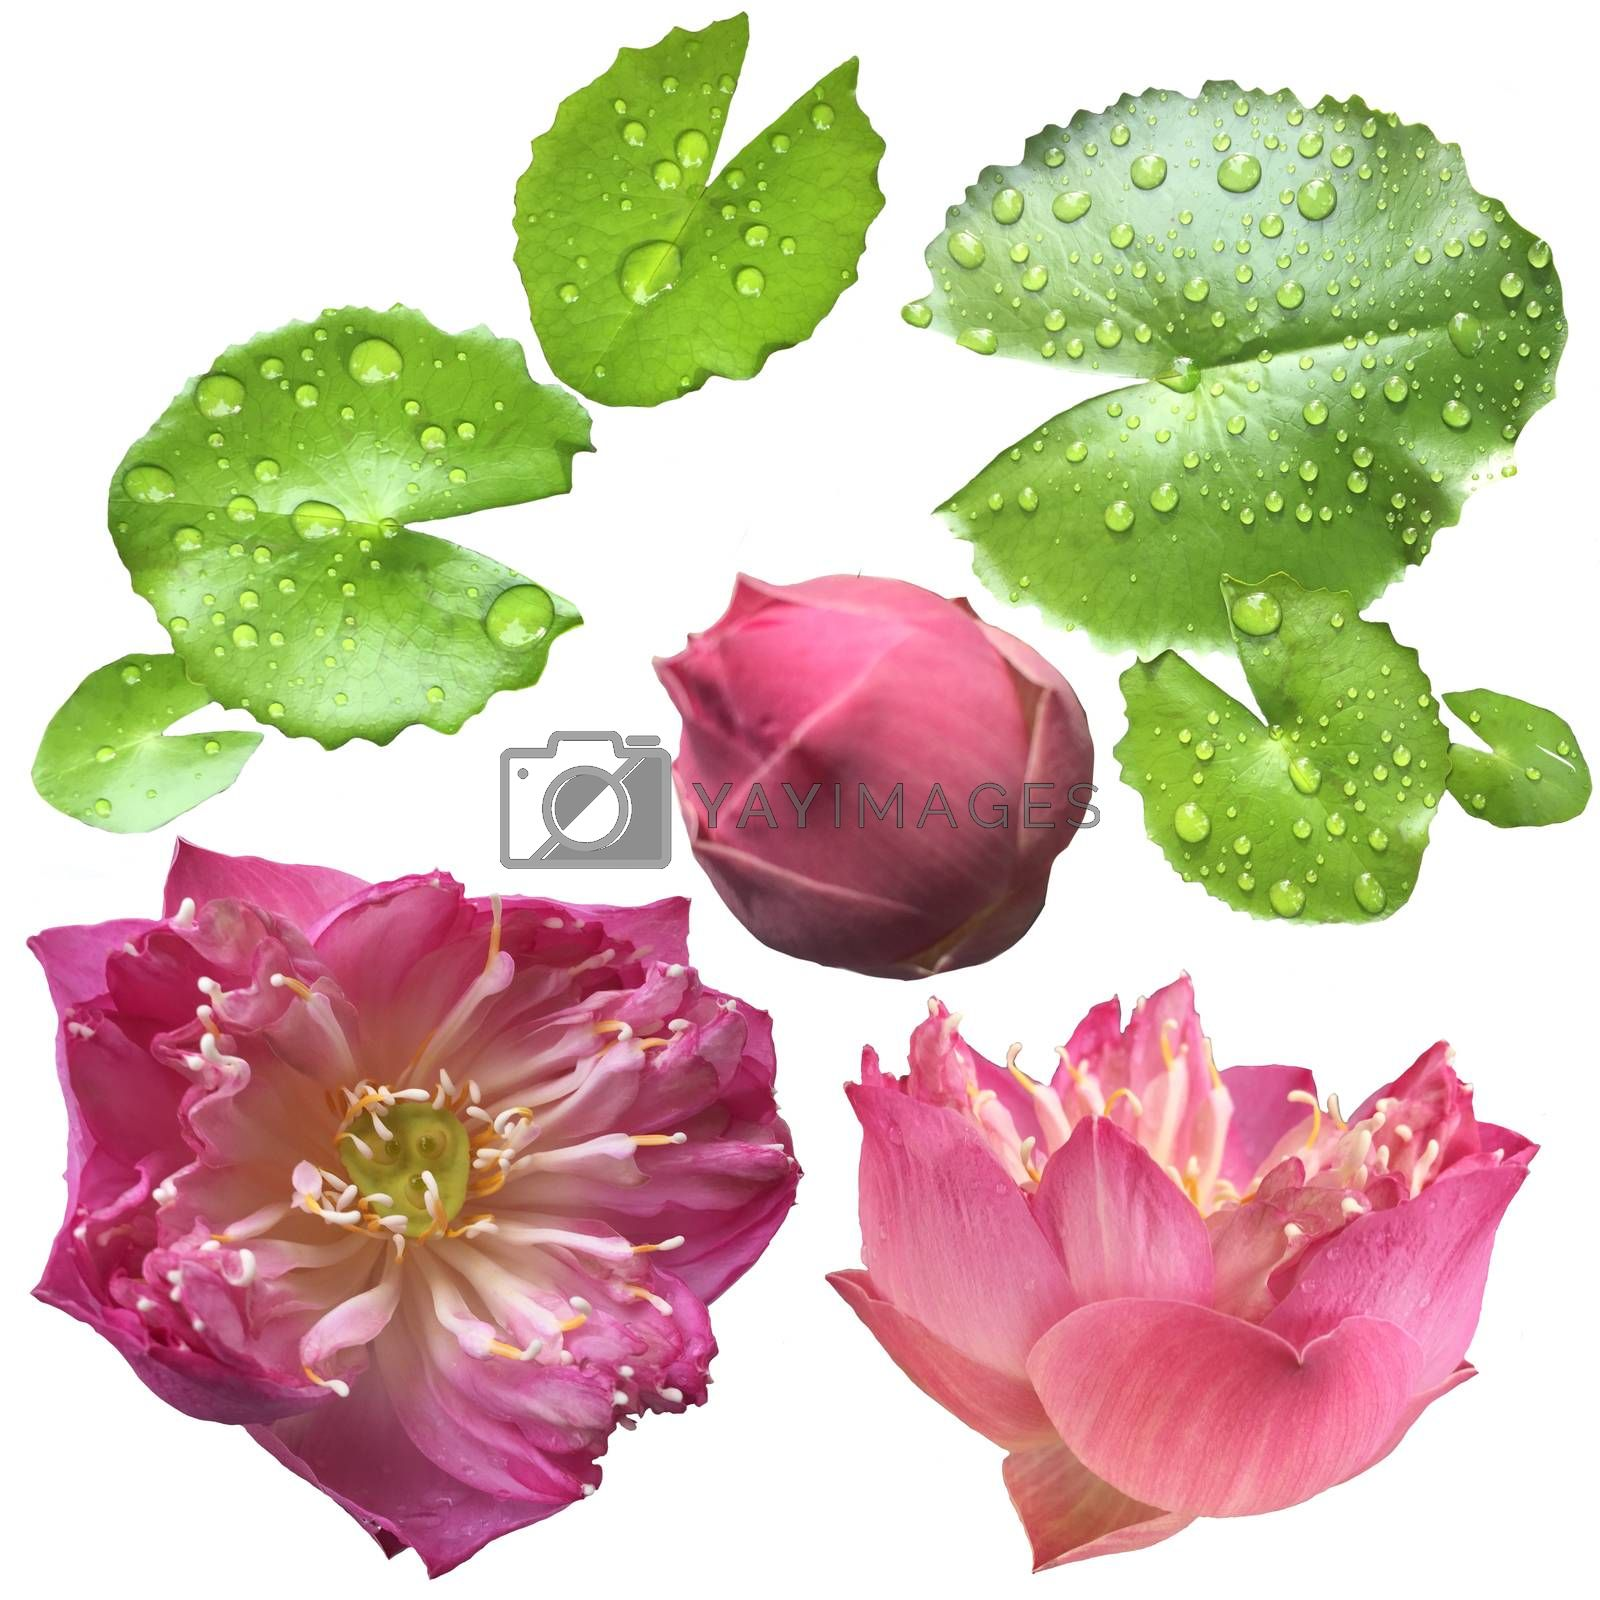 Lotus flower collection isolated on white background for graphic designs. Pink lotus flowers, lotus head and leaves isolated is blooming with copy space for text or advertising on white background